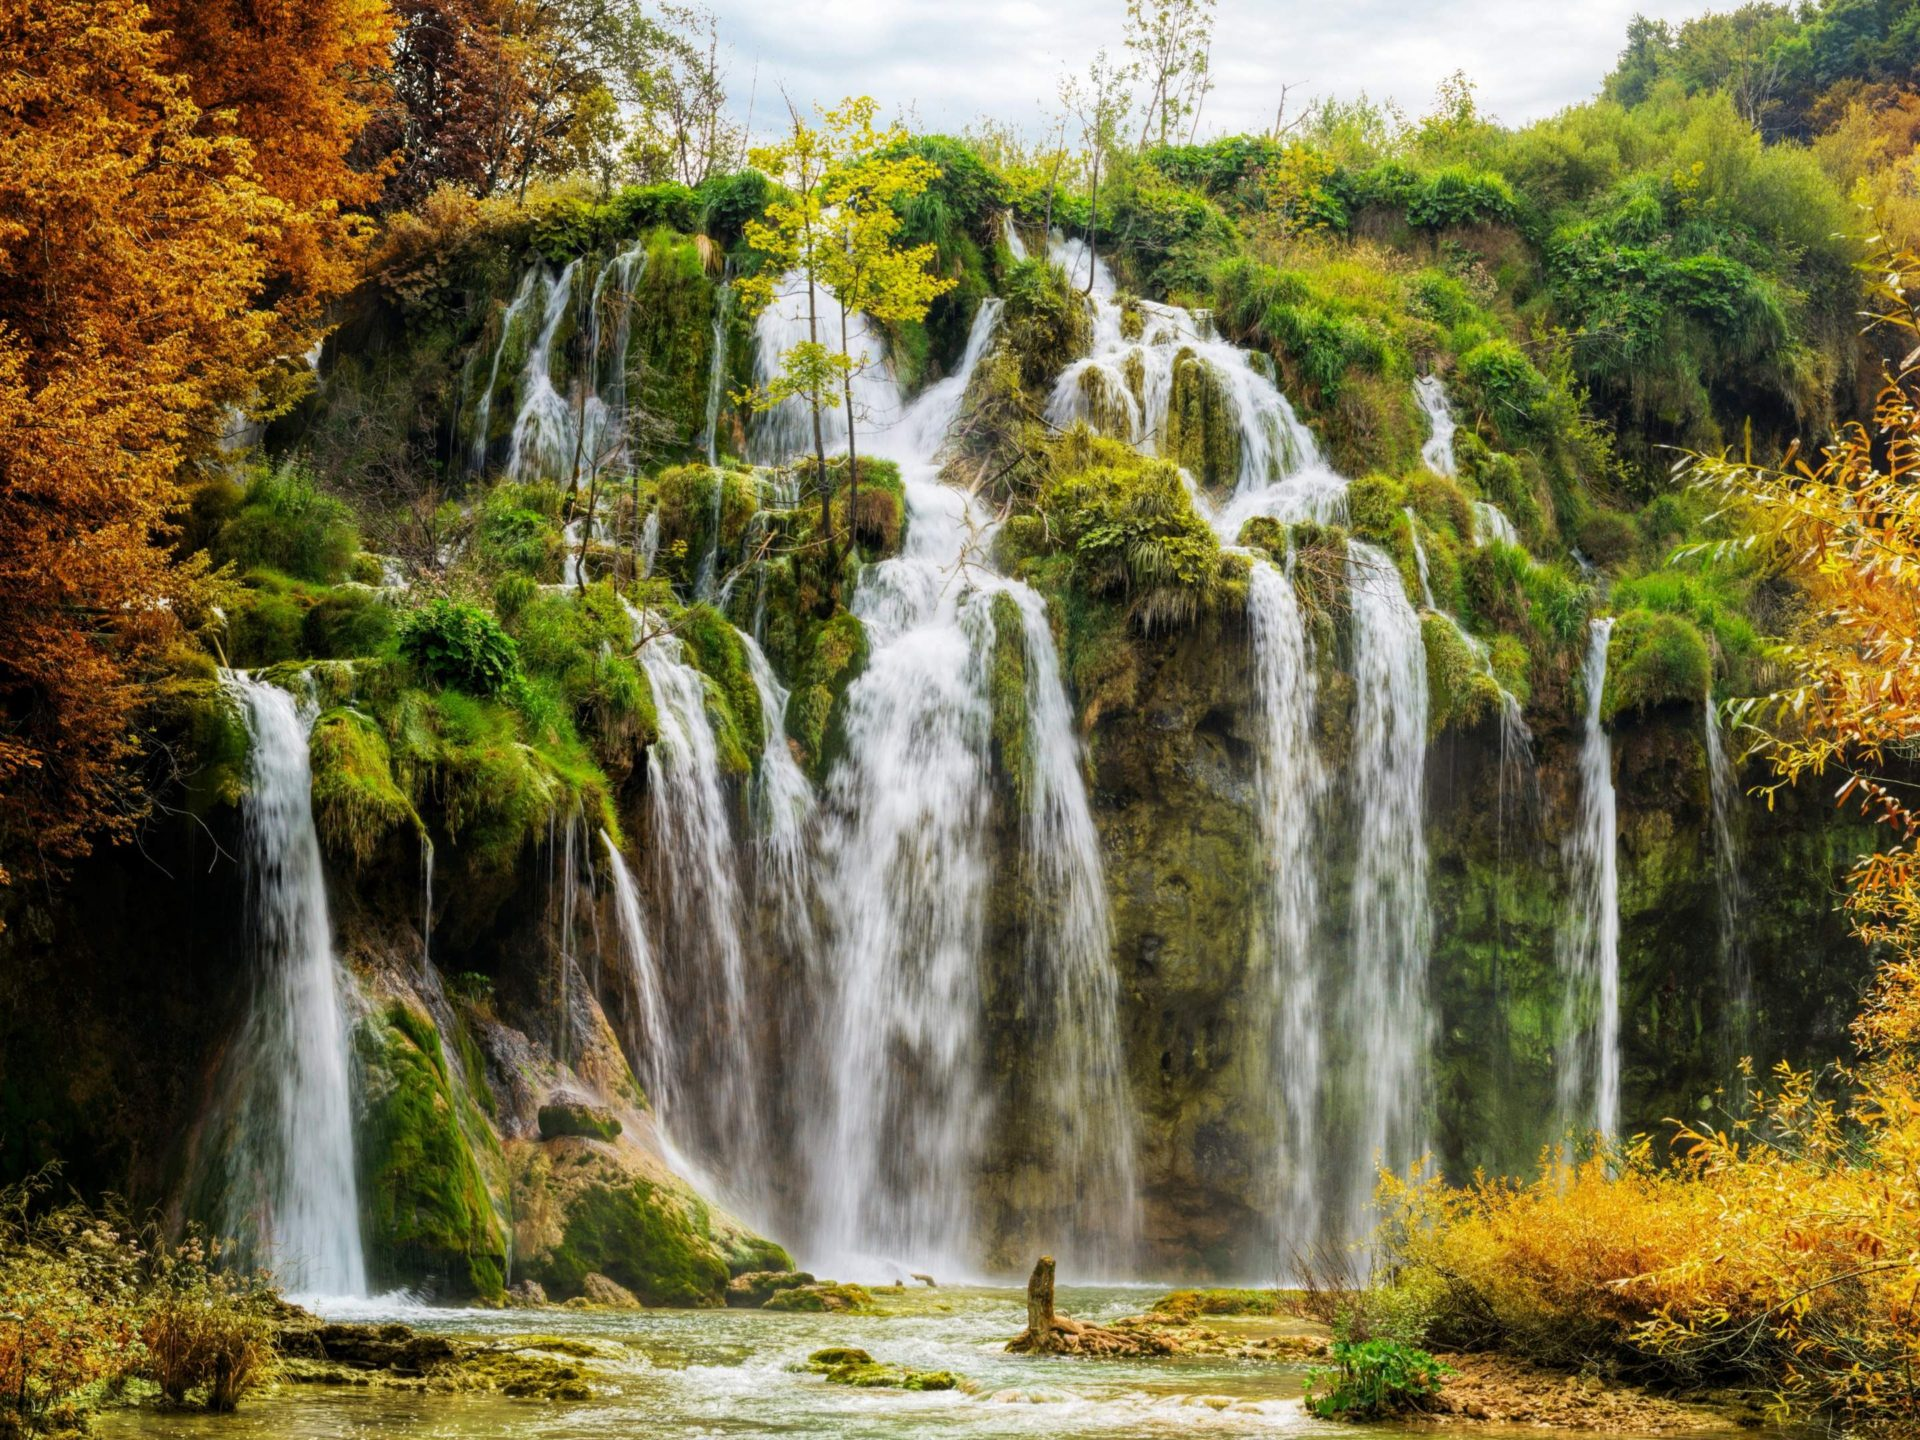 Hd Wallpapers 1280x1024 Cars Plitvice National Park Croatia Autumn Scenery Hd Wallpaper